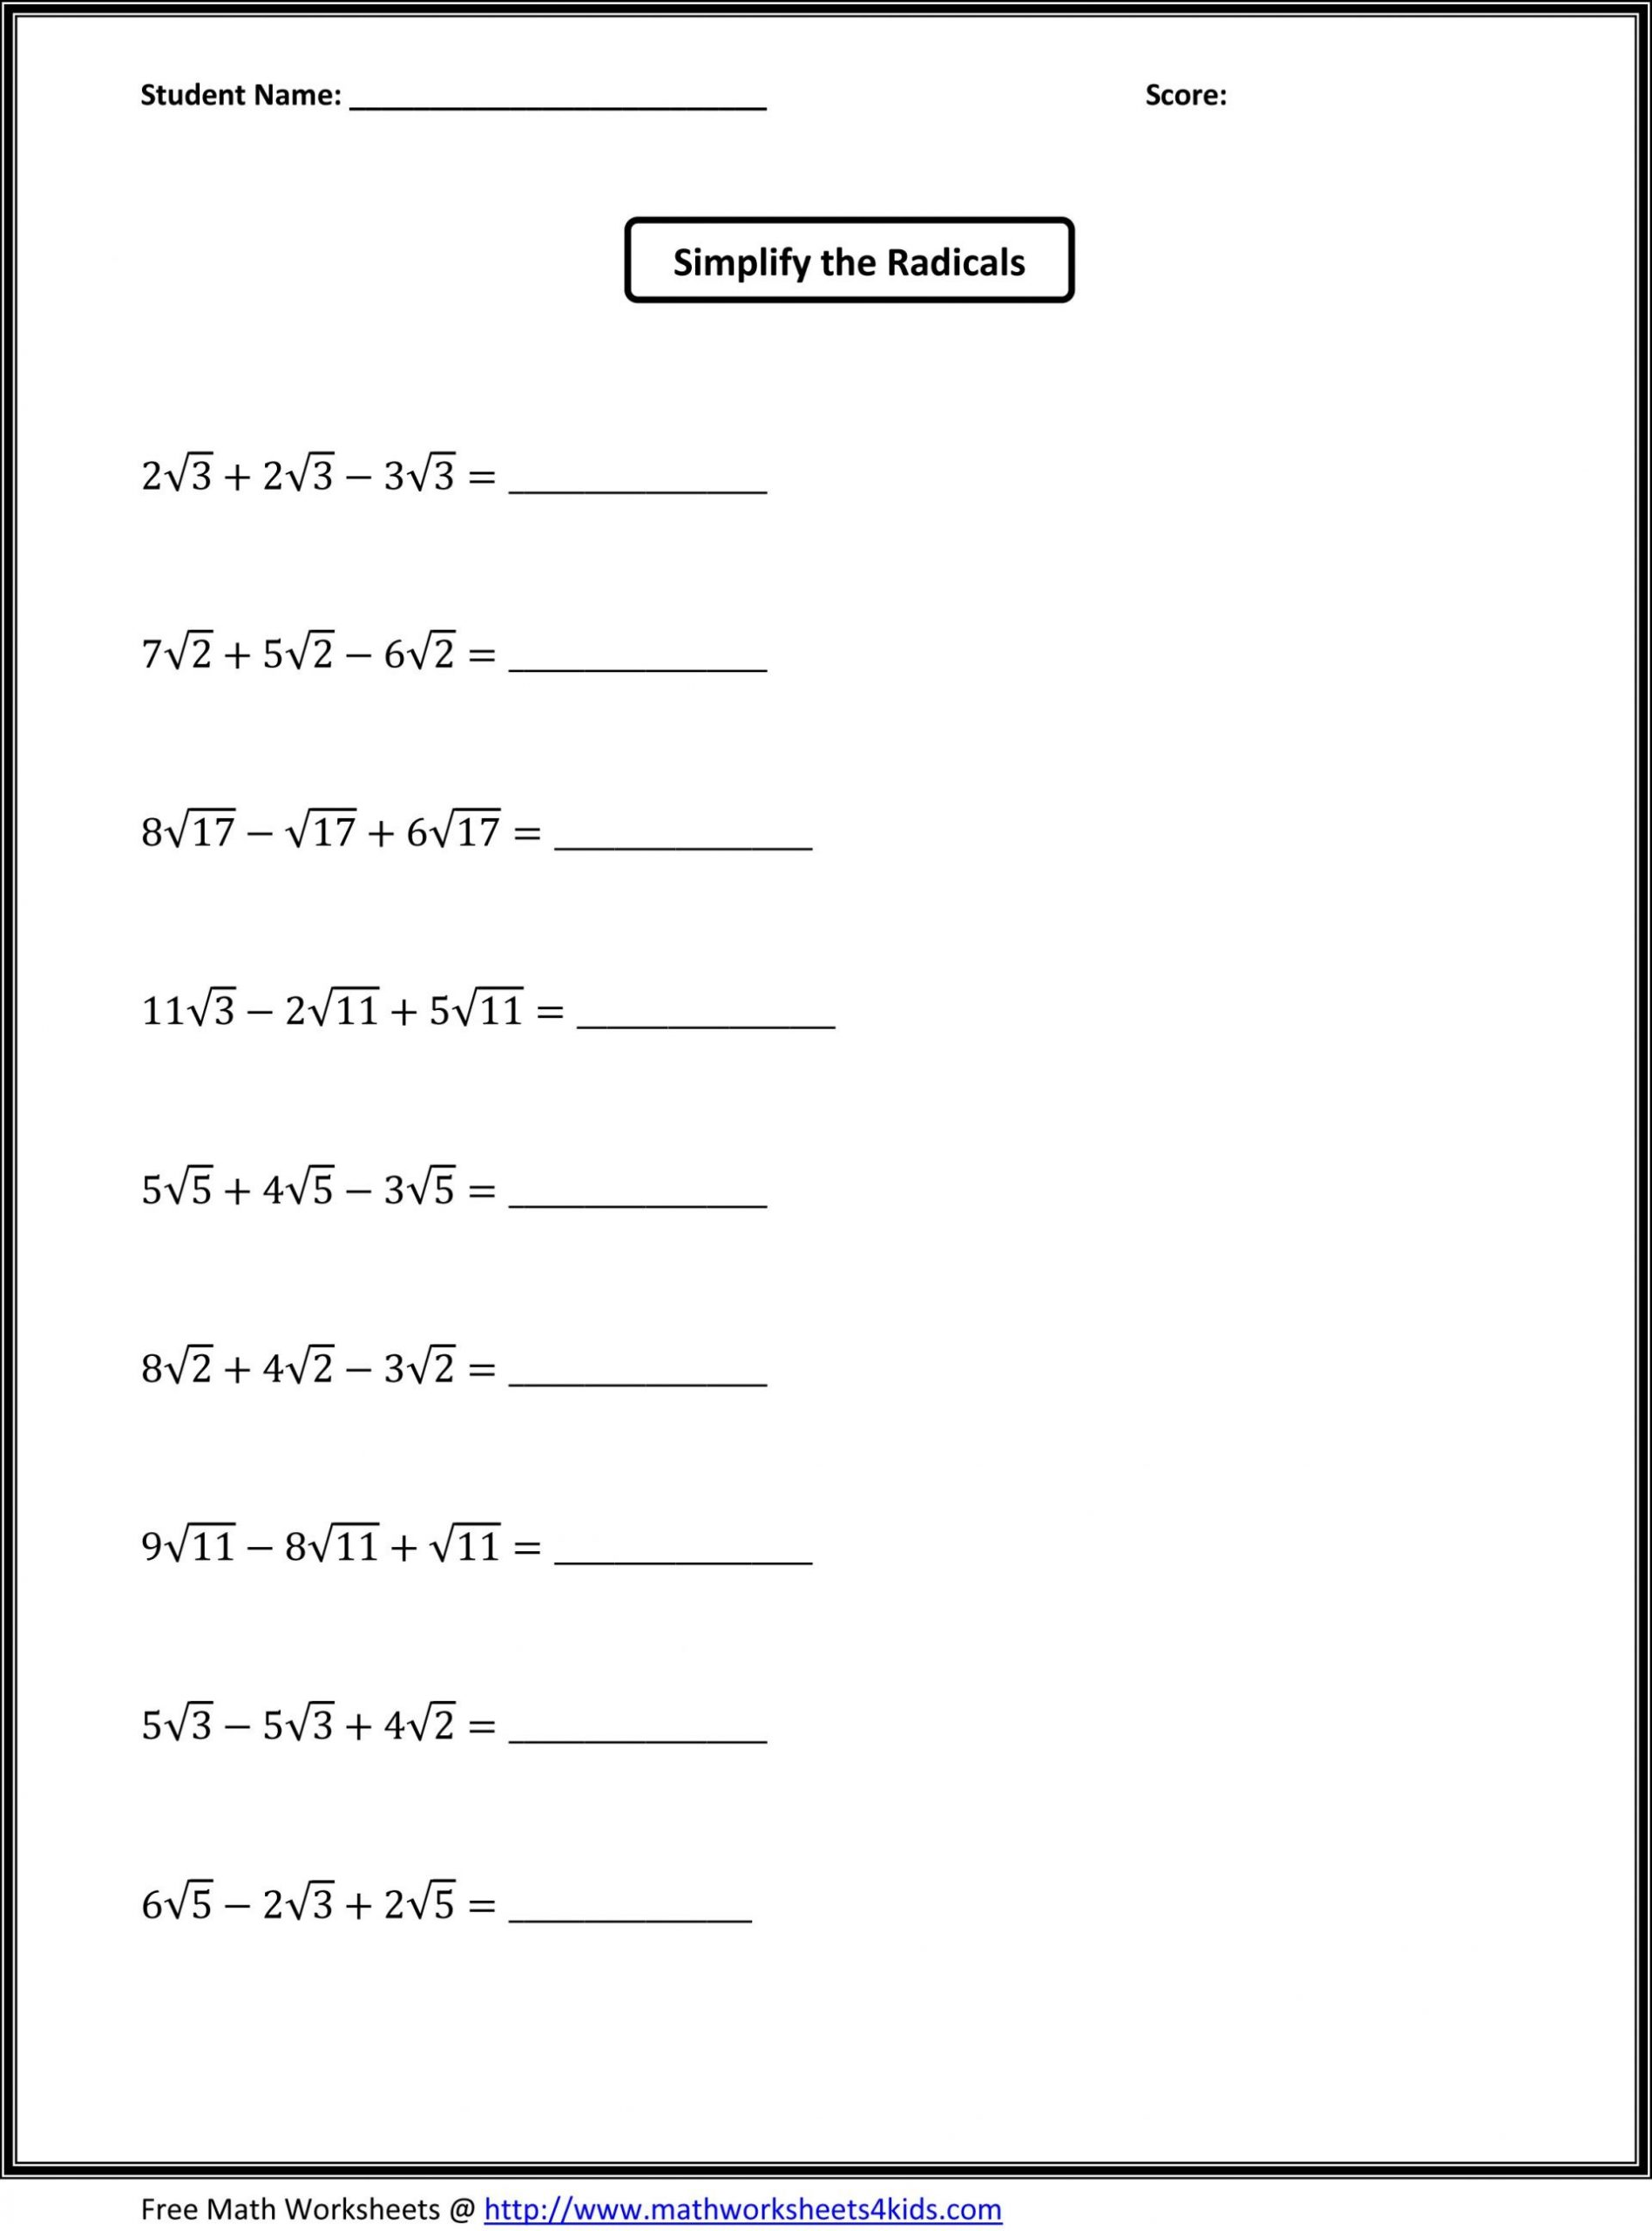 Probability Worksheets 7th Grade Pdf 7th Grade Math Worksheets Pdf